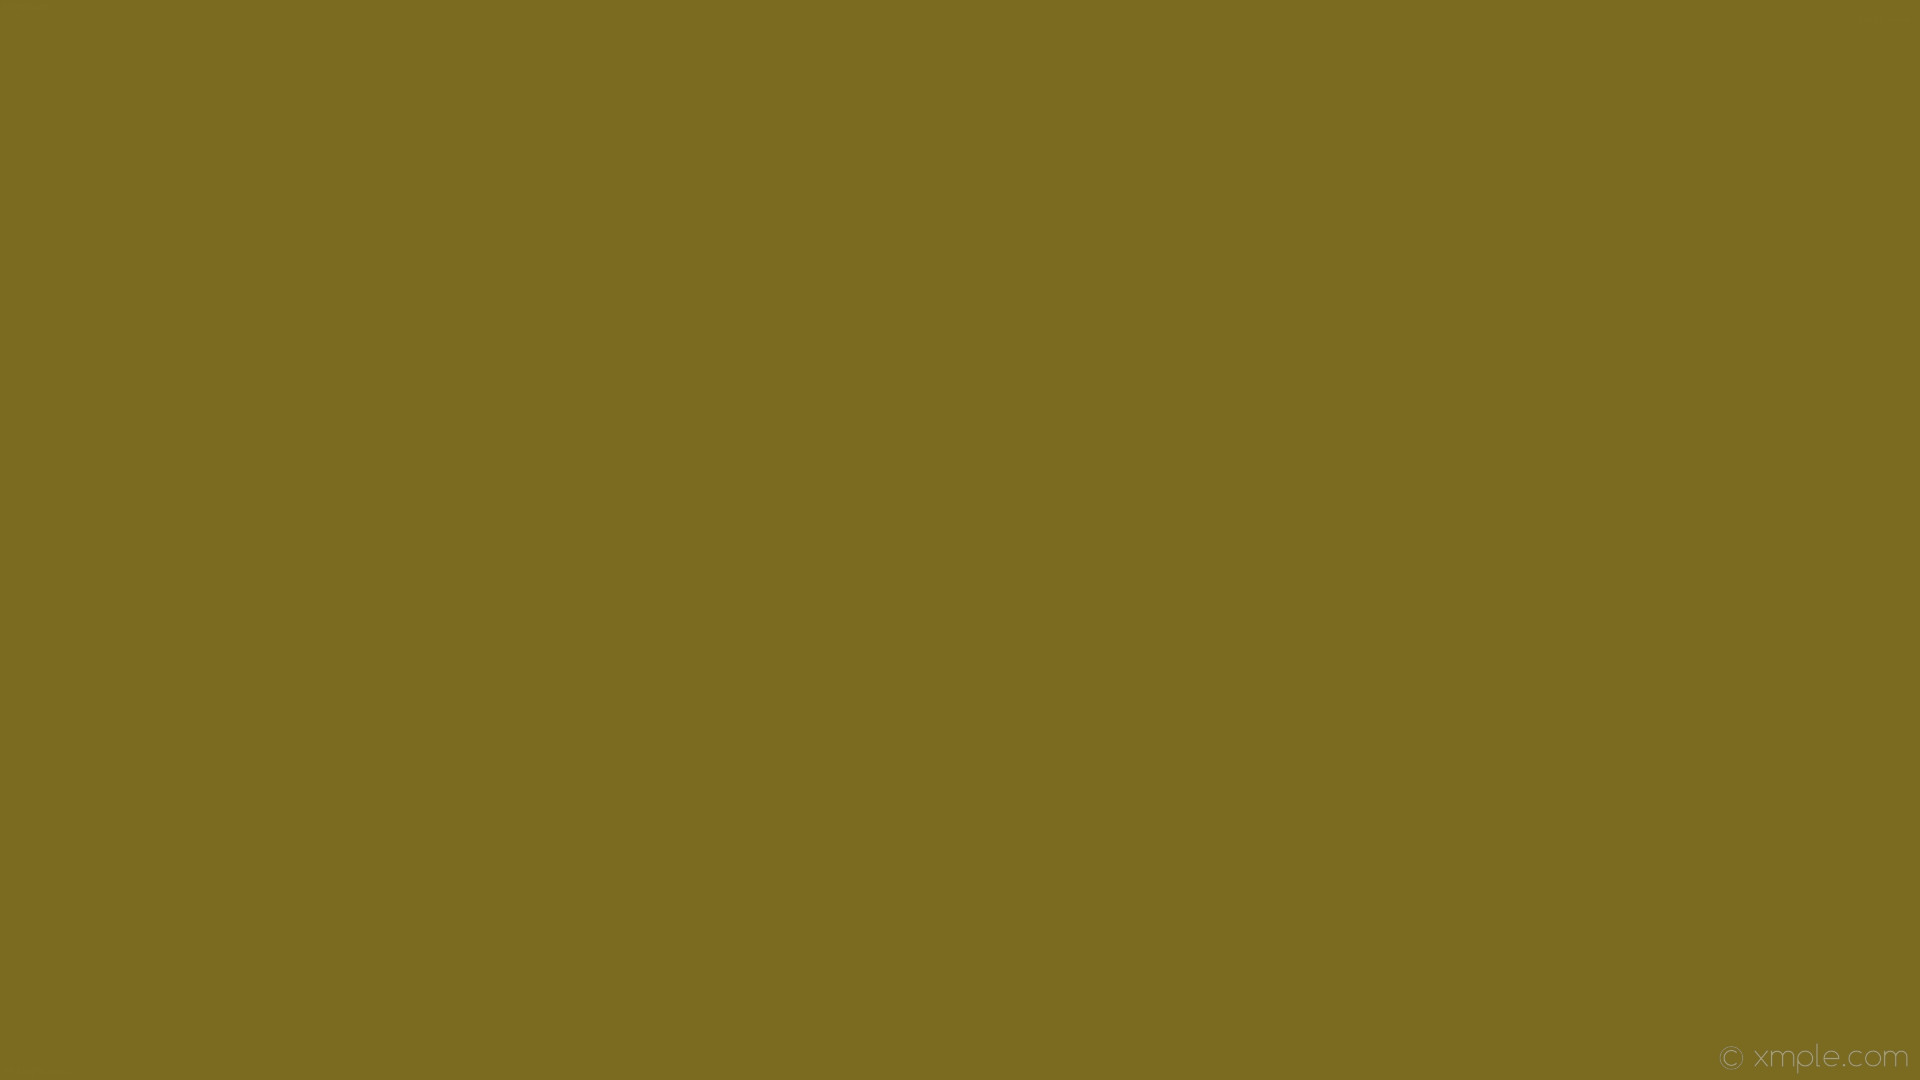 Wallpaper Solid Color Single Yellow One Colour Plain - Hd Wallpaper For Laptop Single Colour - HD Wallpaper